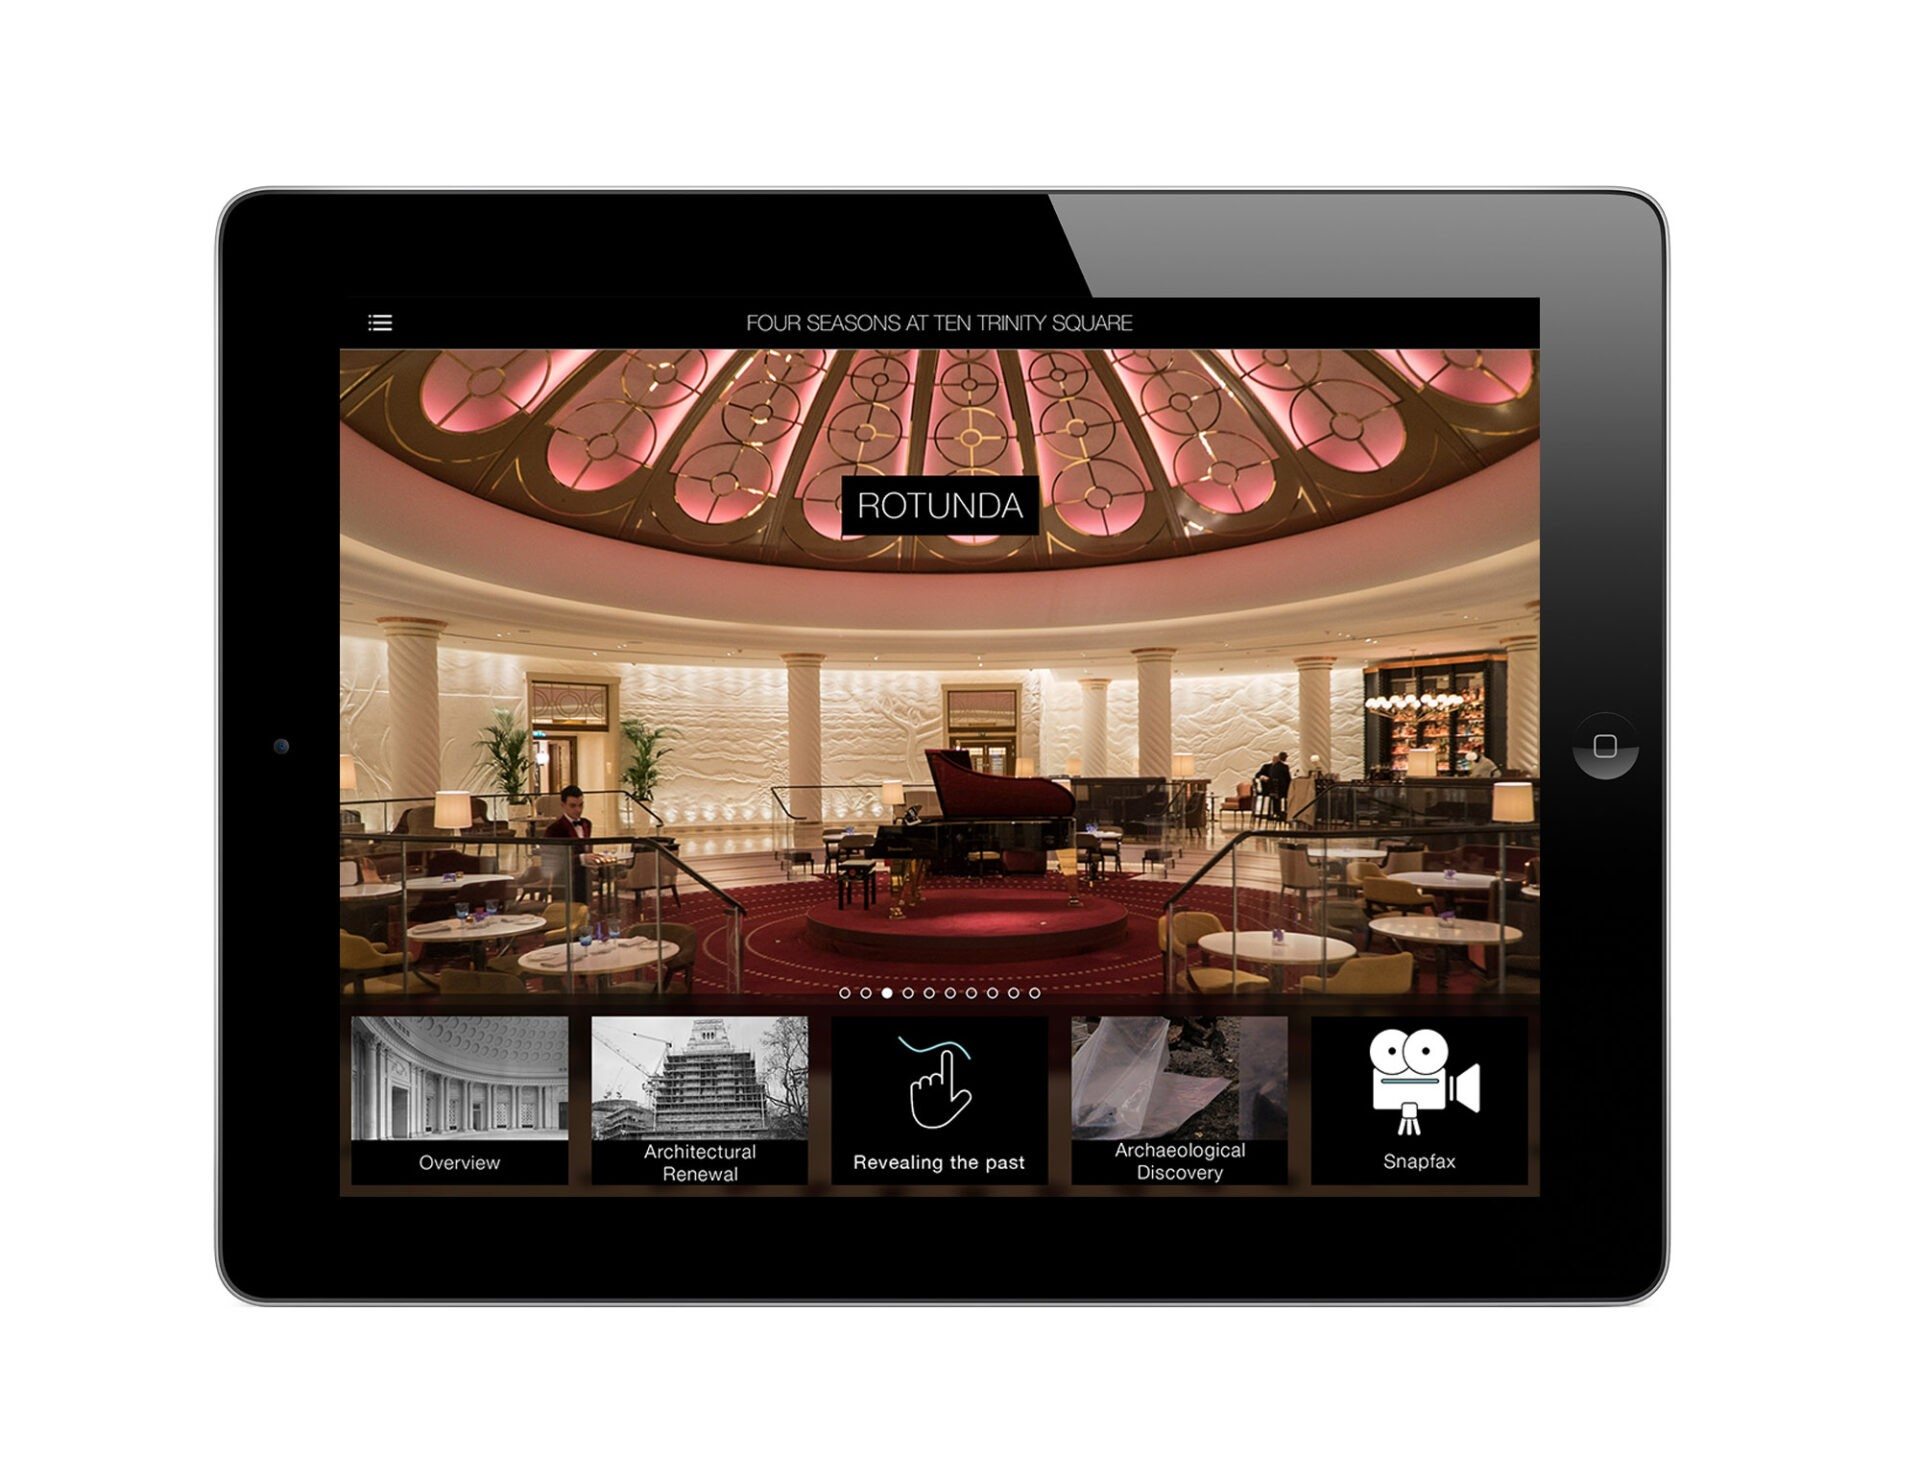 Four Seasons App on iPad